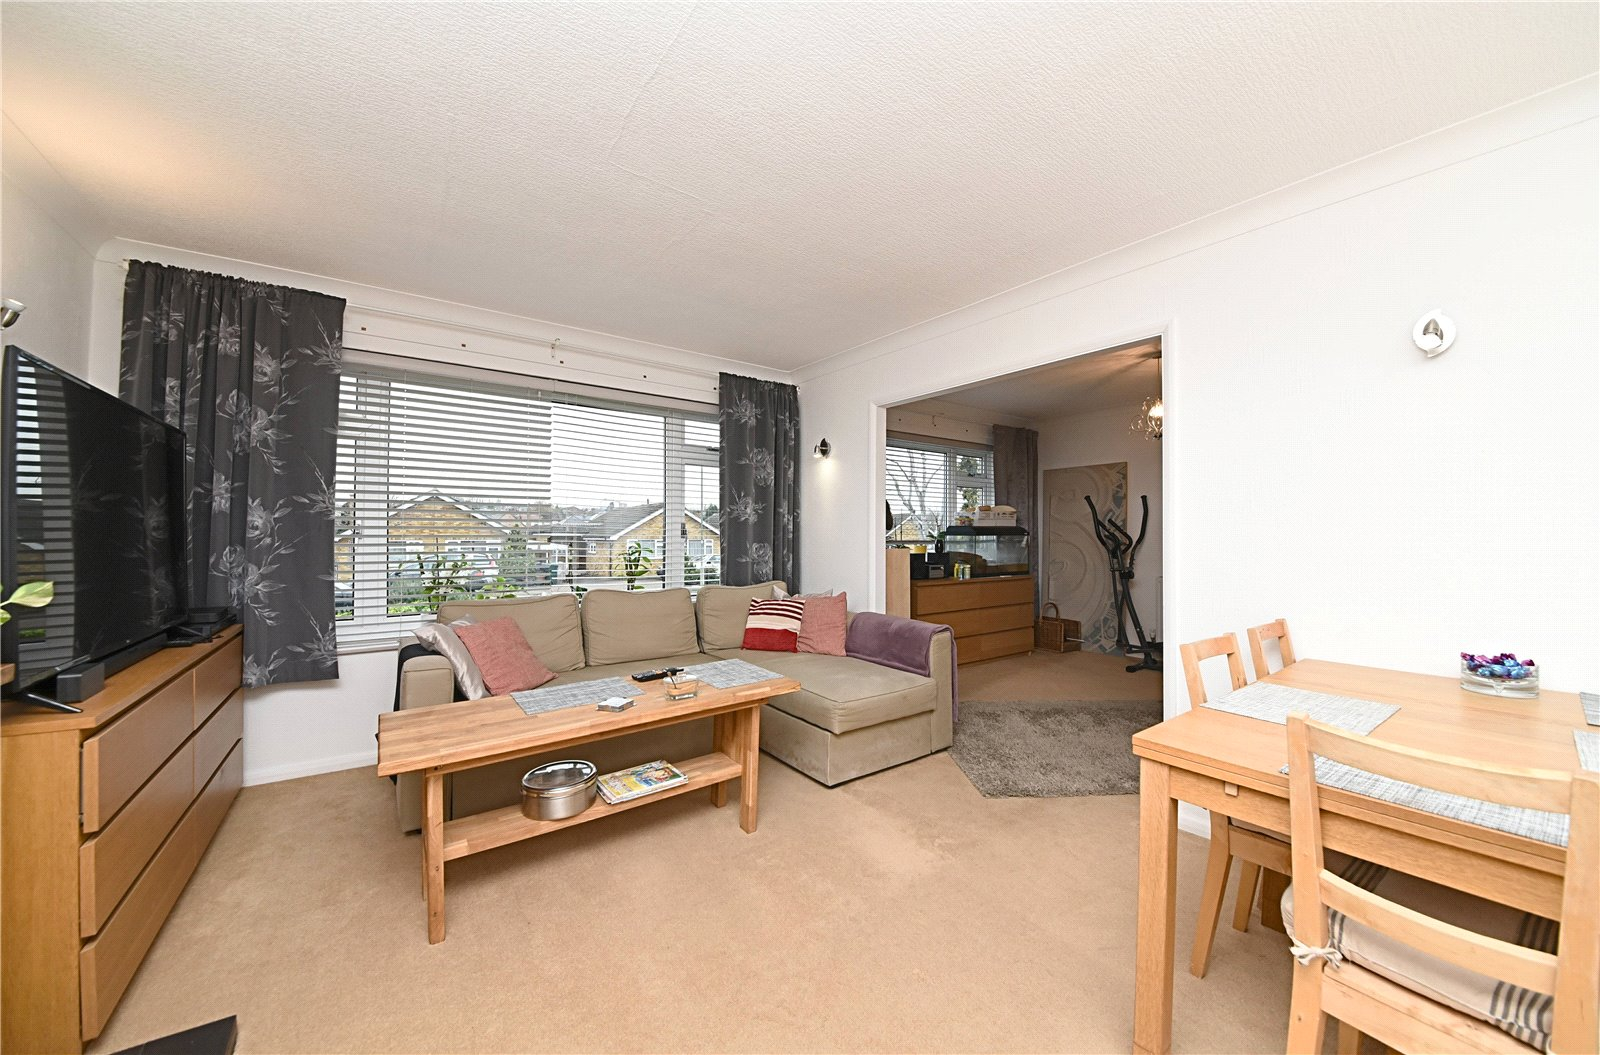 2 bed bungalow for sale in Barnet, EN4 9QT  - Property Image 5